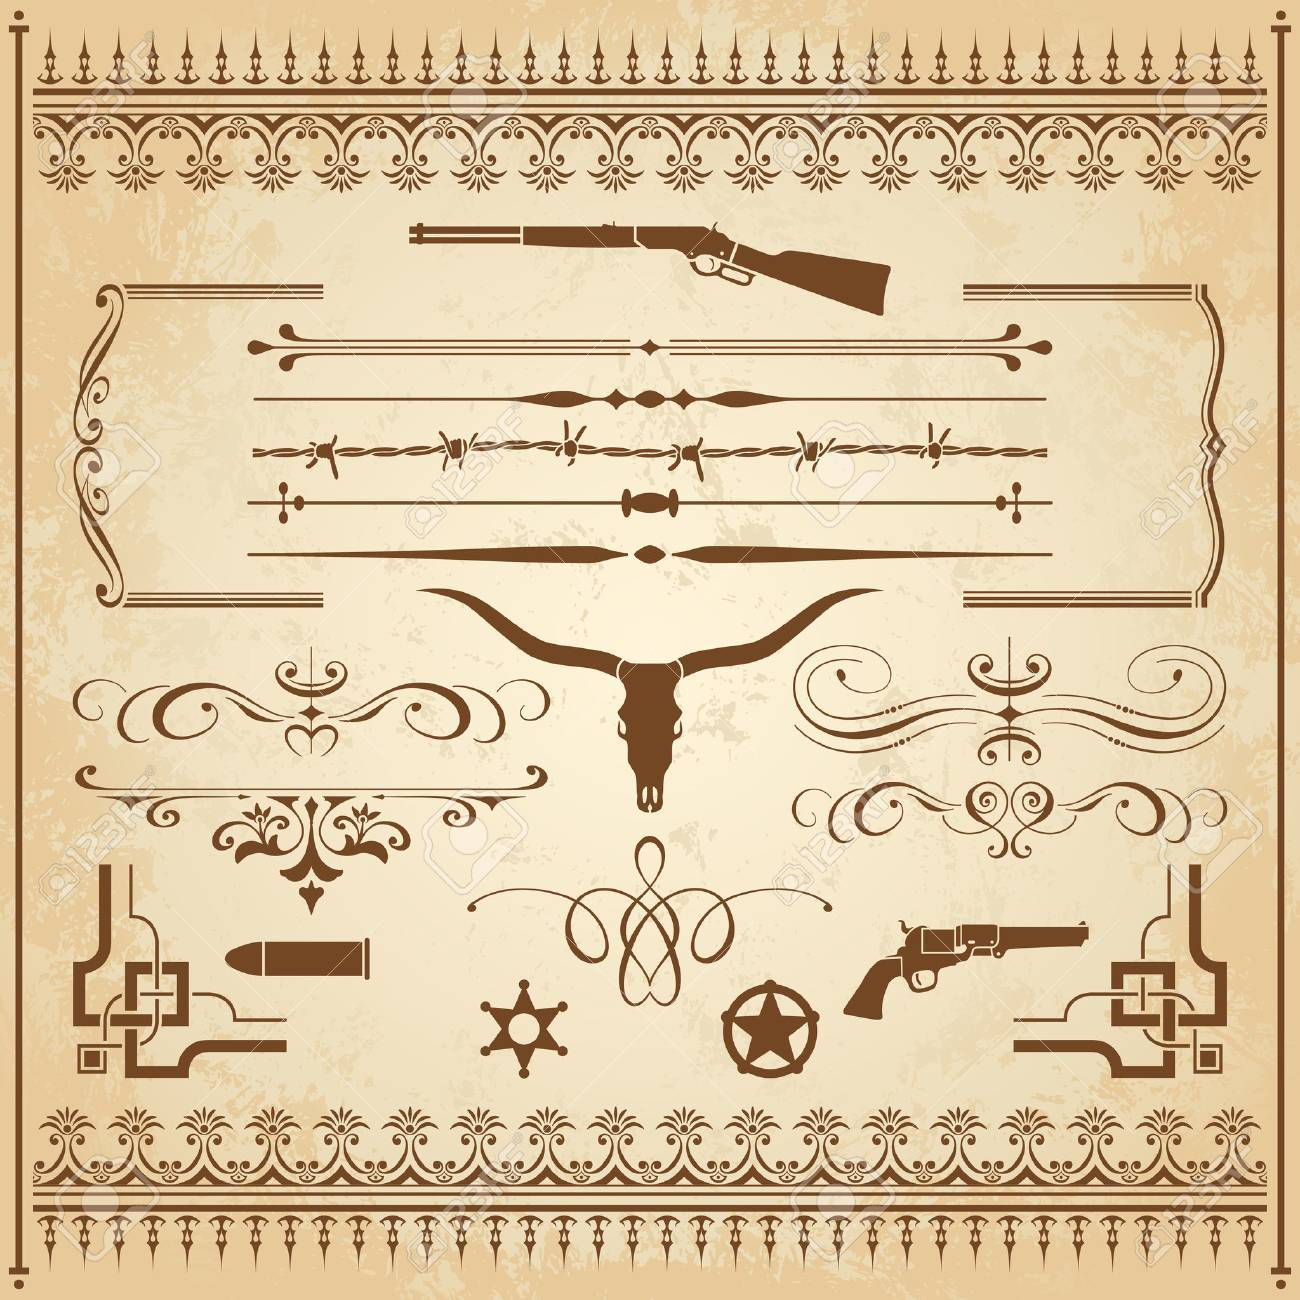 A collection of Wild West ornament, with frames, rulers, angle ornaments and cliparts. - 42558768